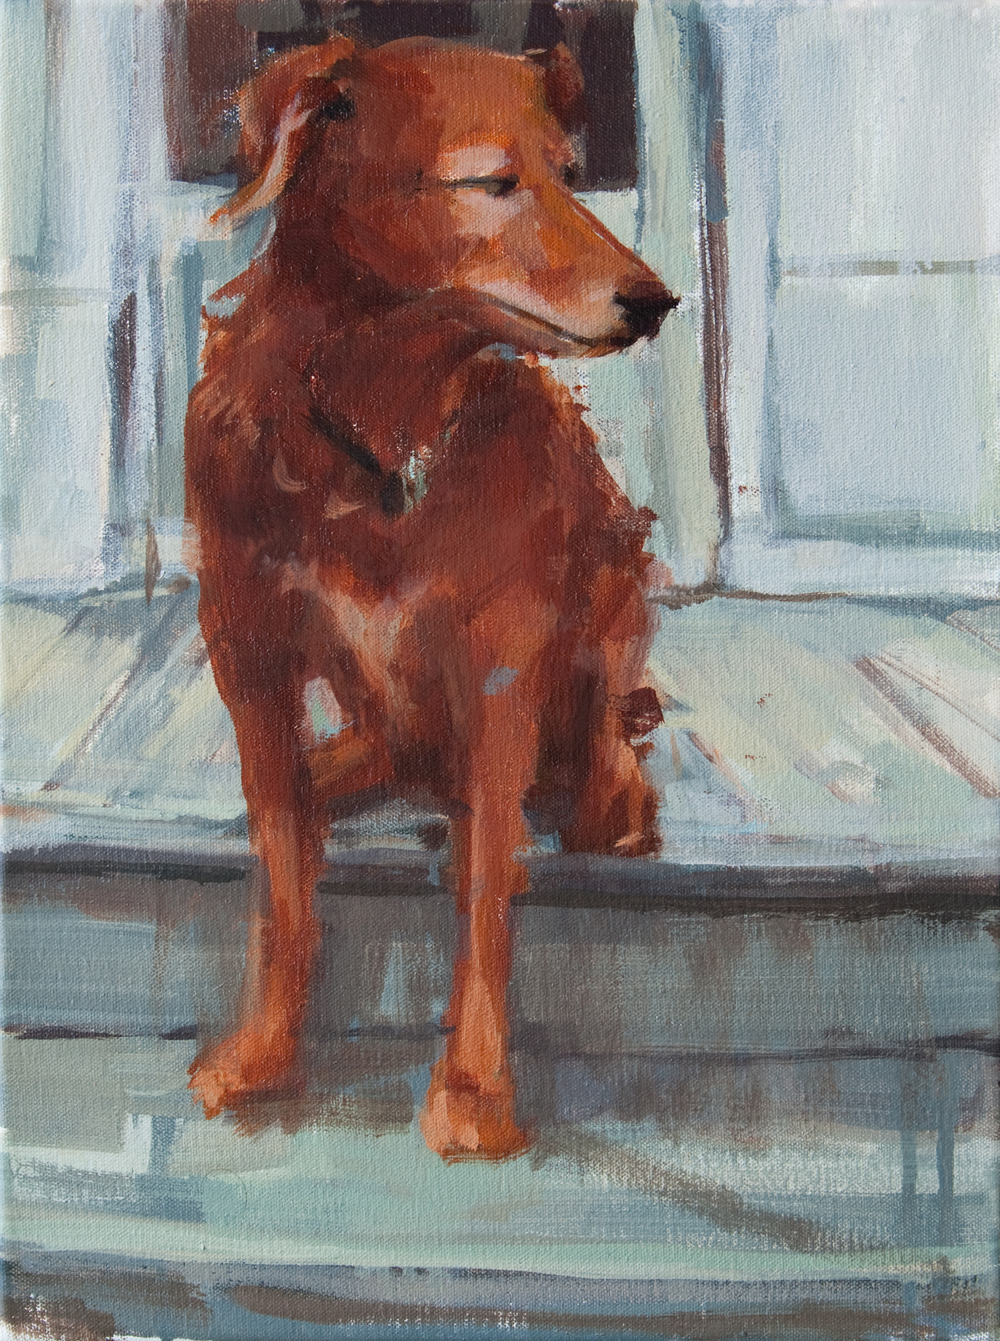 "Brown Dog, oil on canvas, 12"" x 9"", 2012"